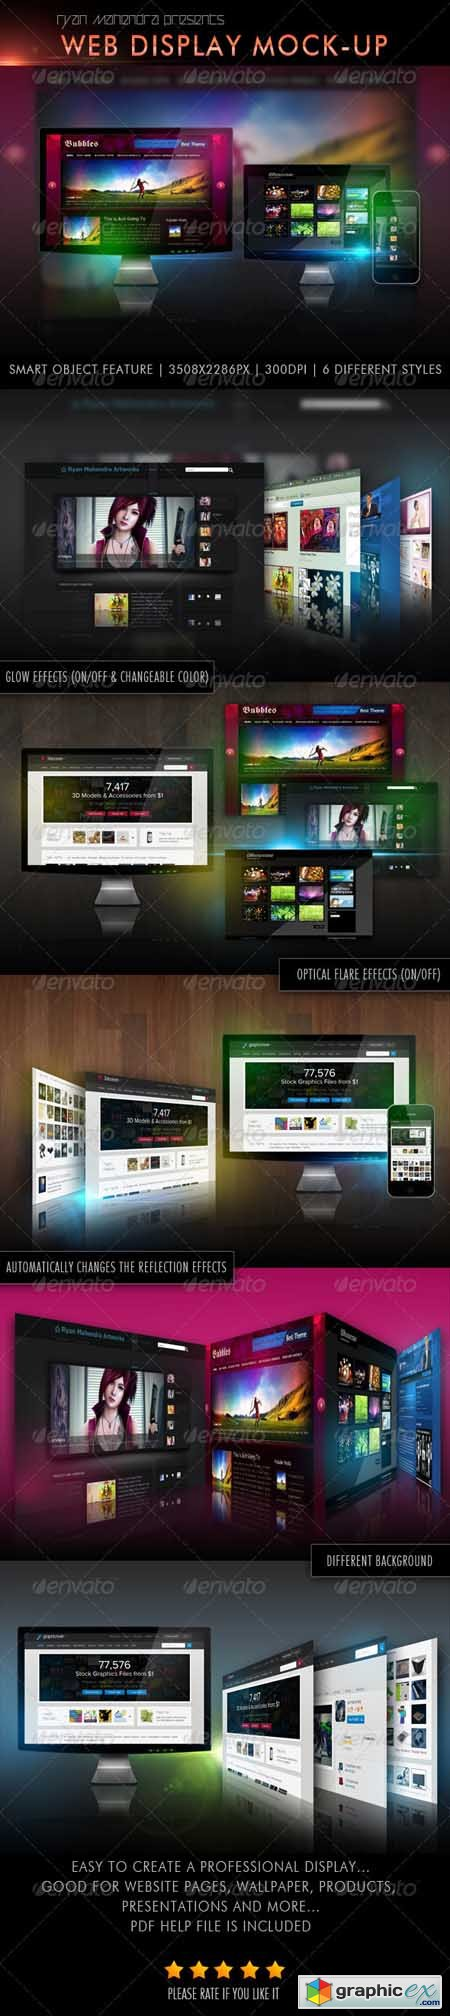 Web Display Mock-Ups